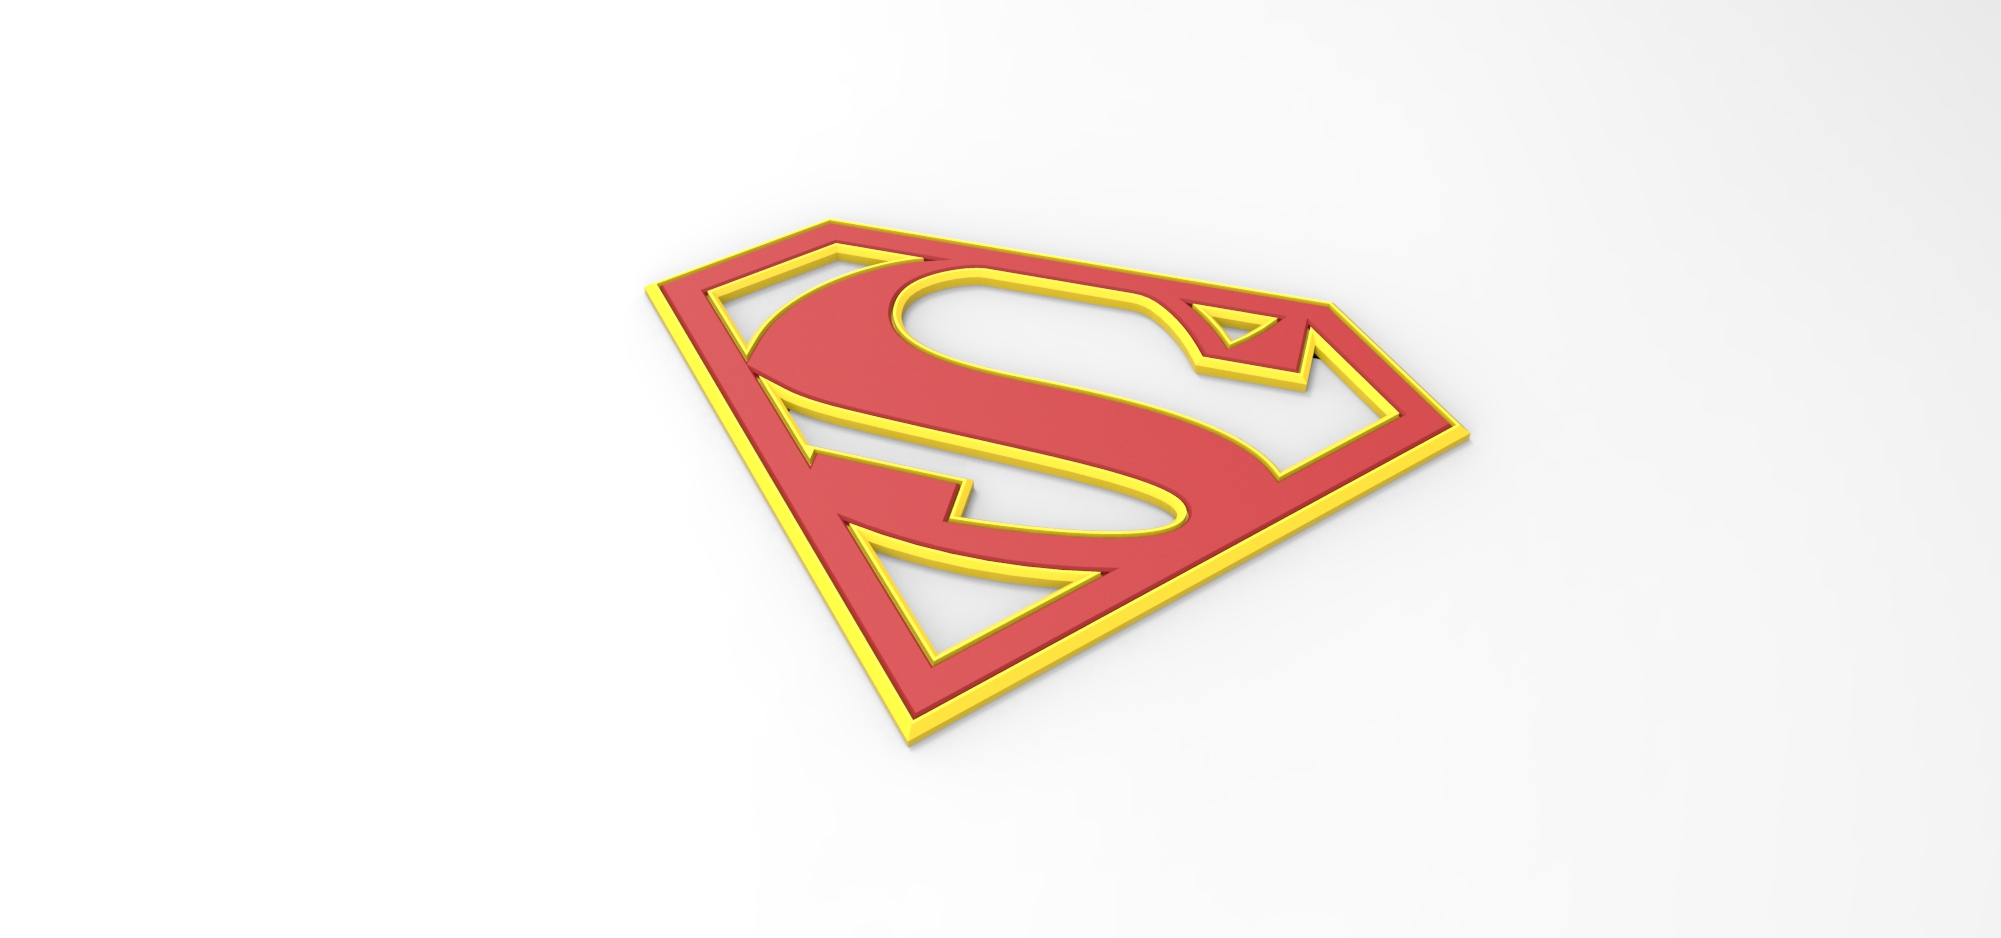 photo regarding Supergirl Logo Printable identify 3D printable Supergirl logo for cosplay gown